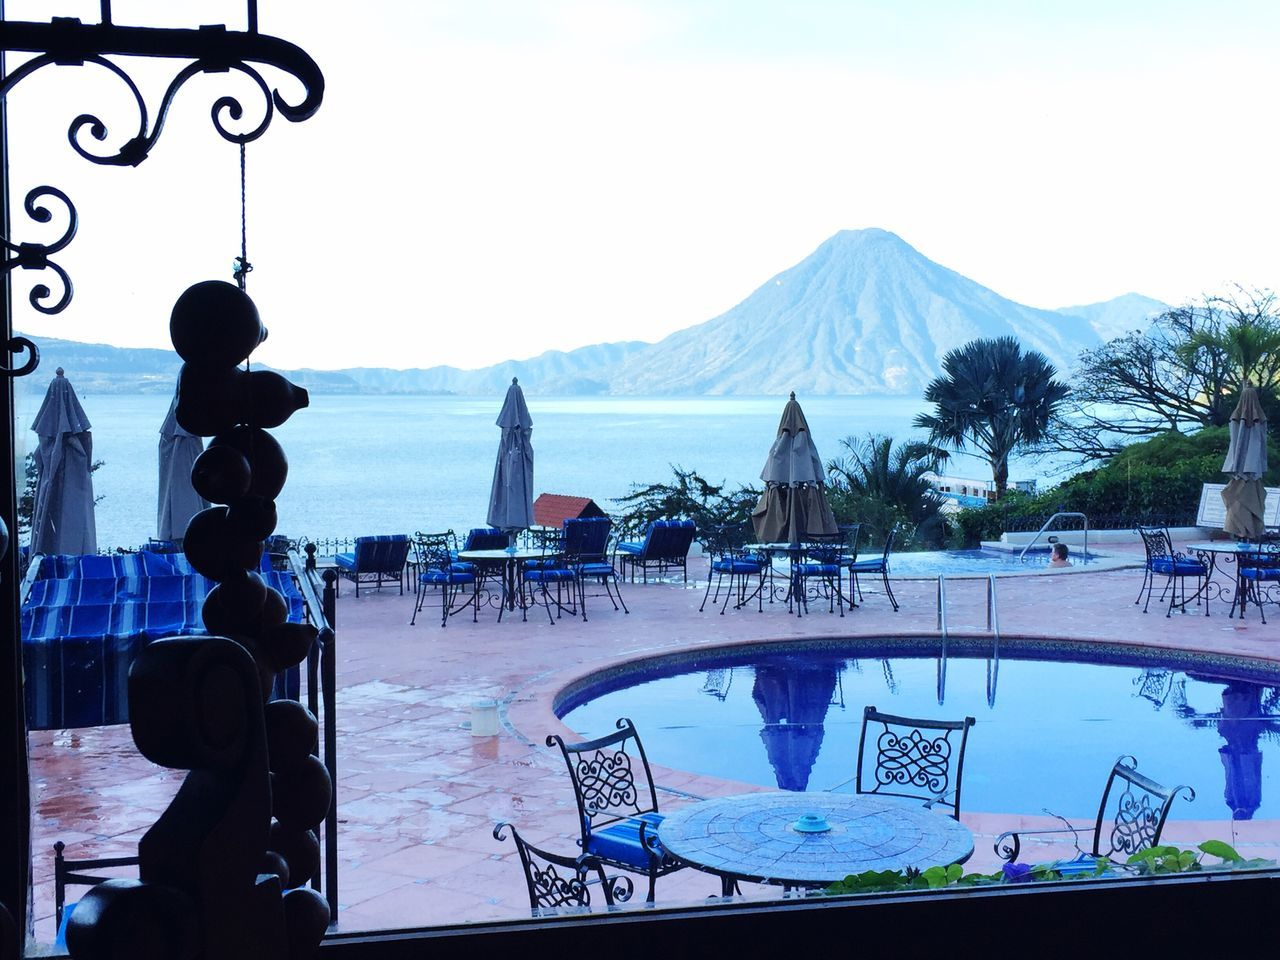 View from the restaurant, Hotel Atitlan Atitlan Lake Guatemala Panajachel  Hotel Atitlan